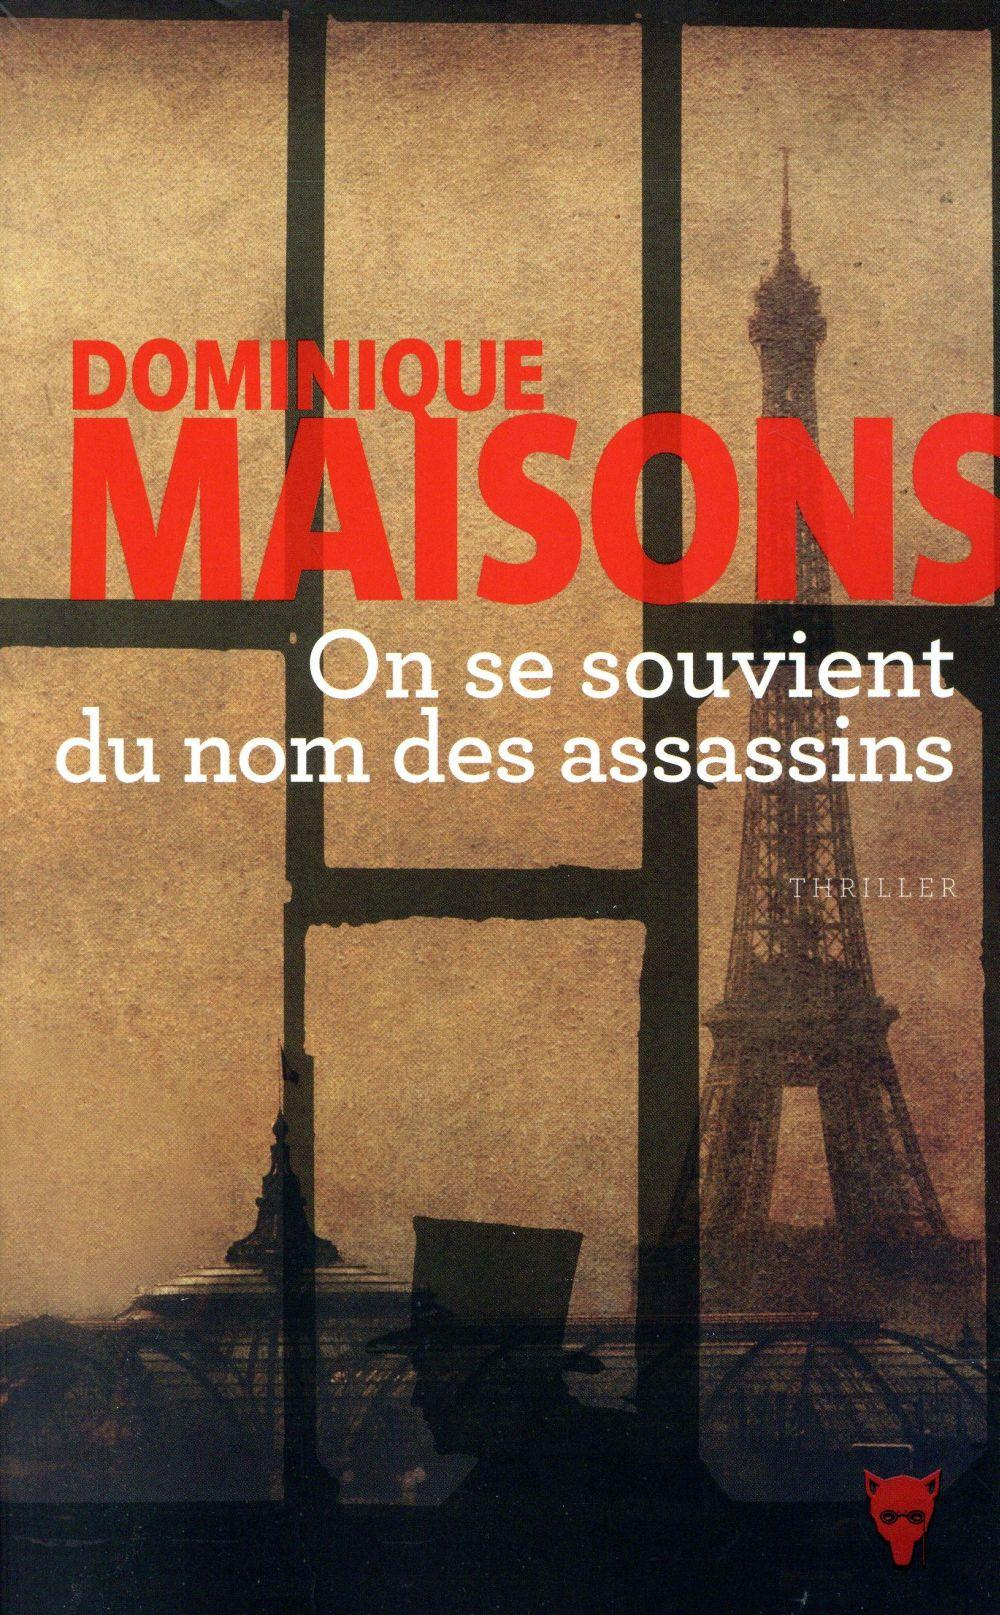 On se souvient du nom des assassins  - Dominique Maisons